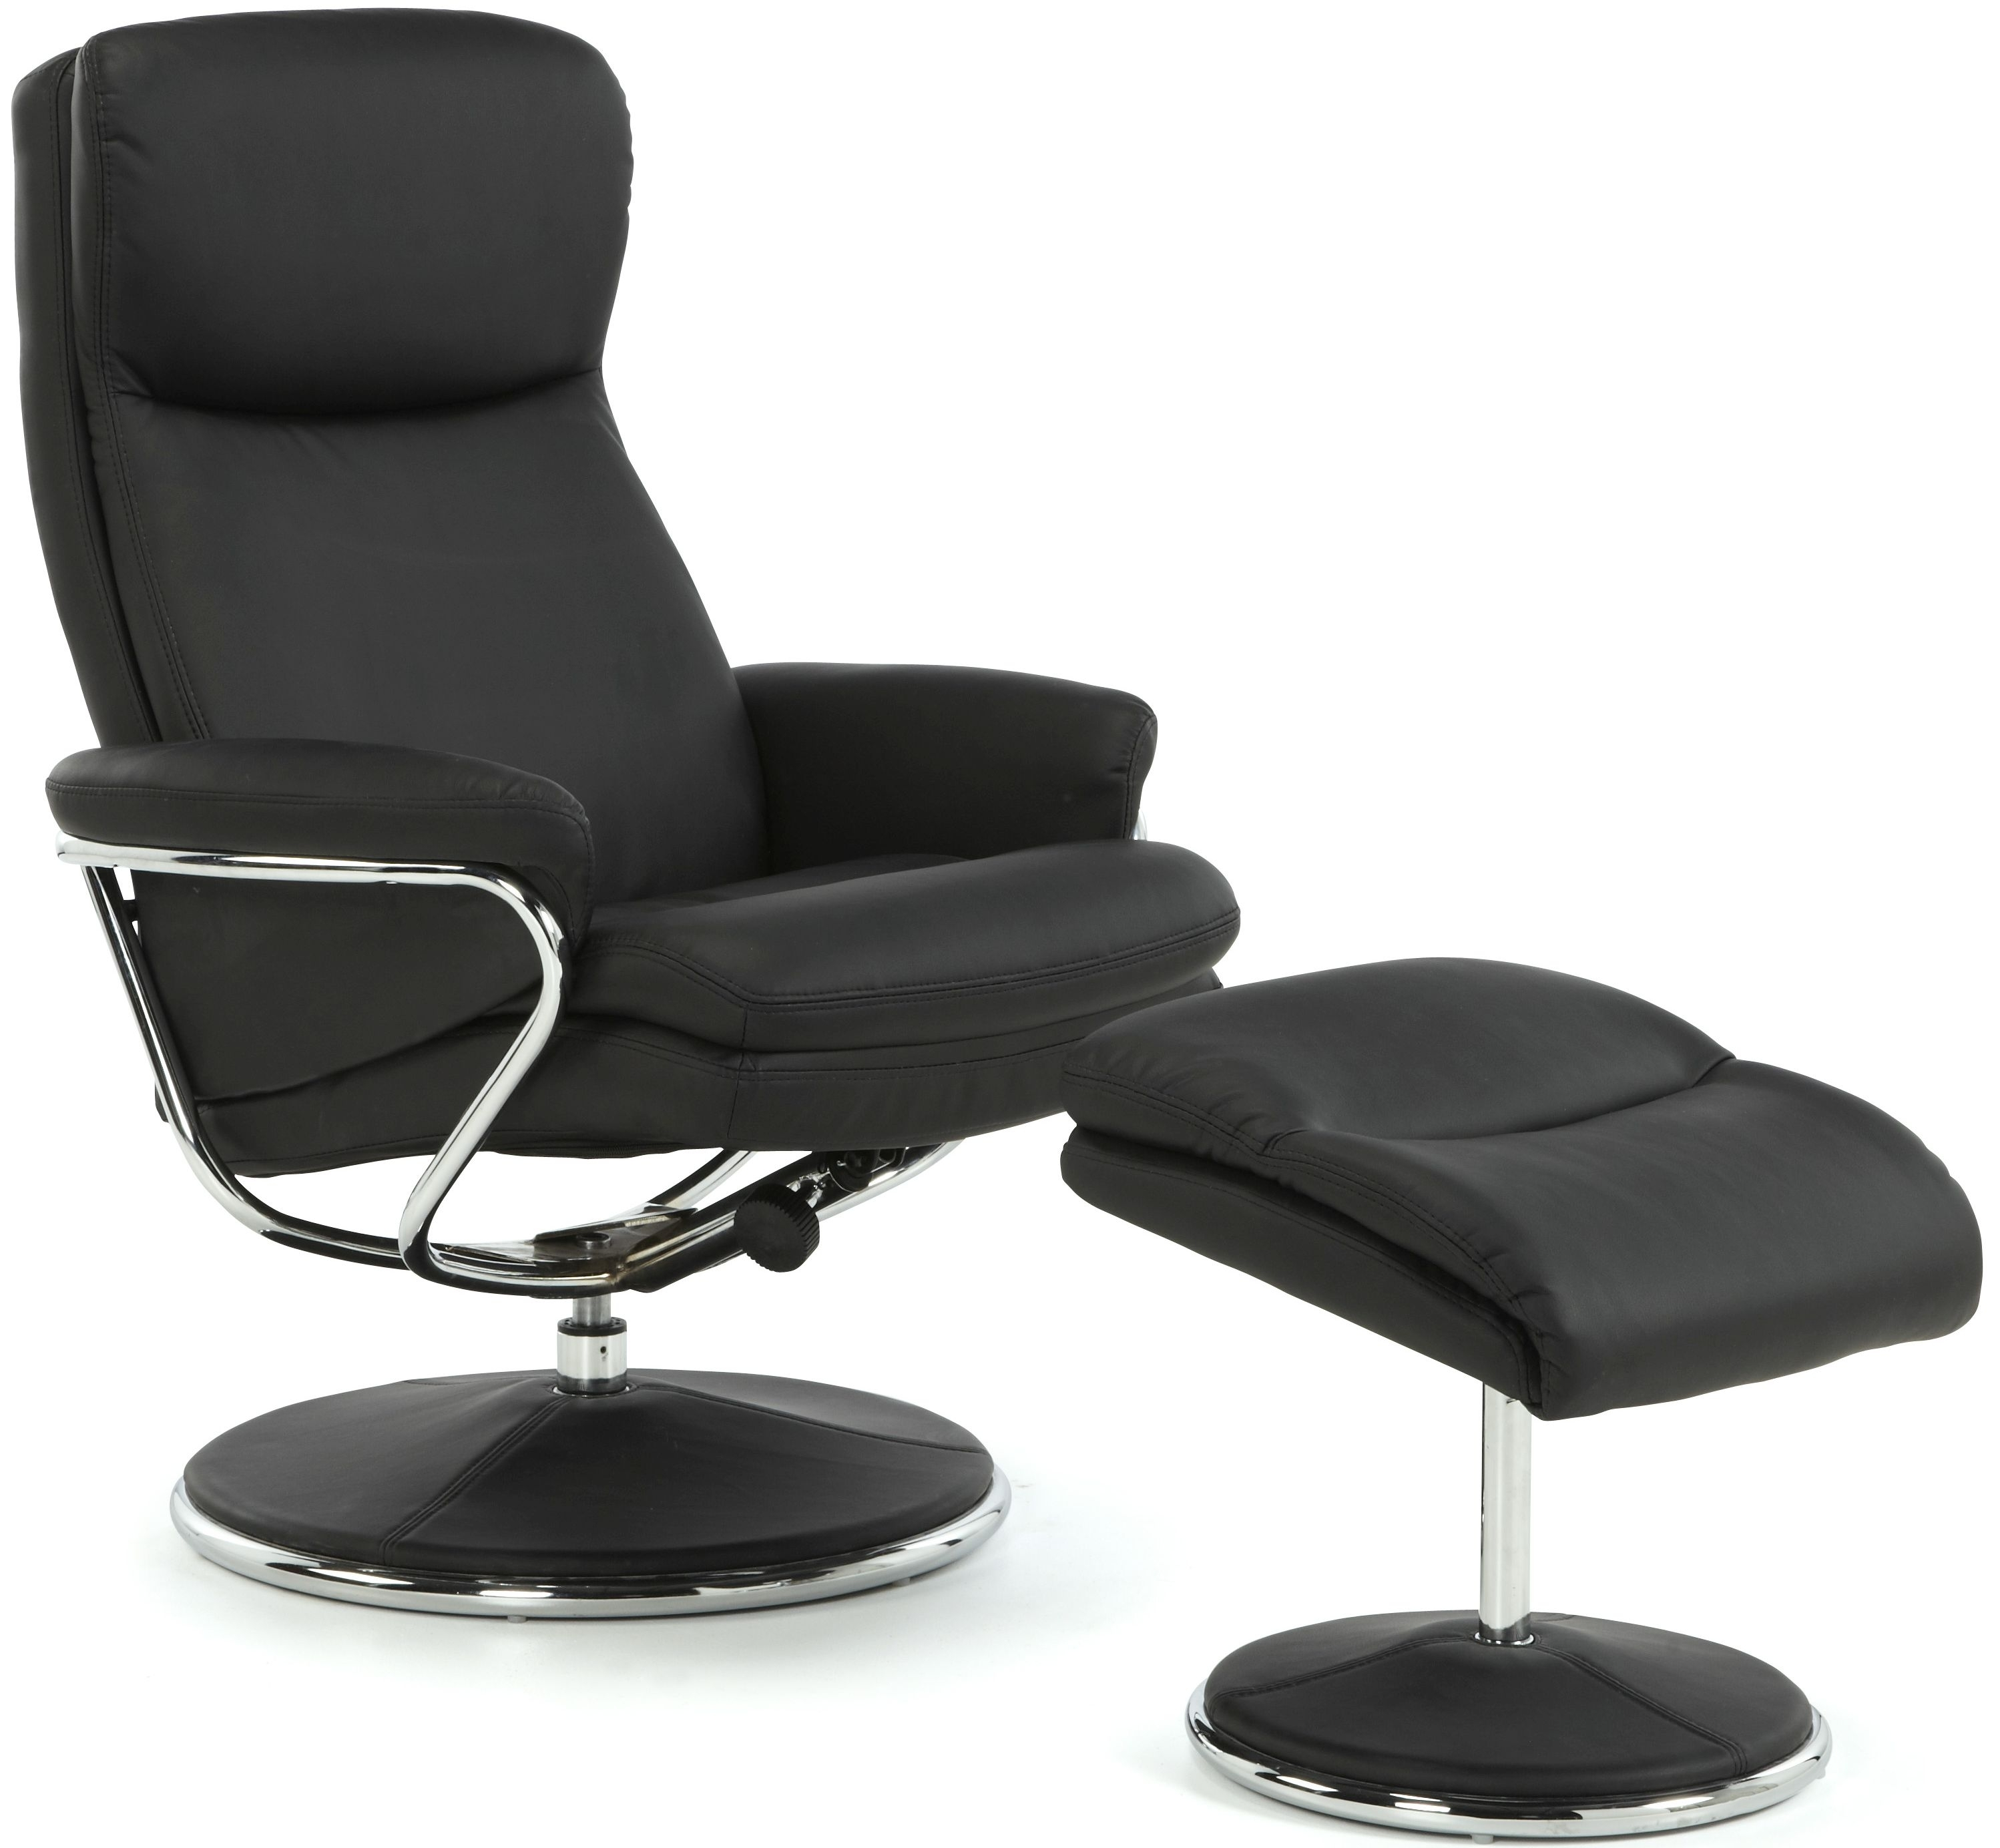 Serene Halden Black Faux Leather Recliner Chair